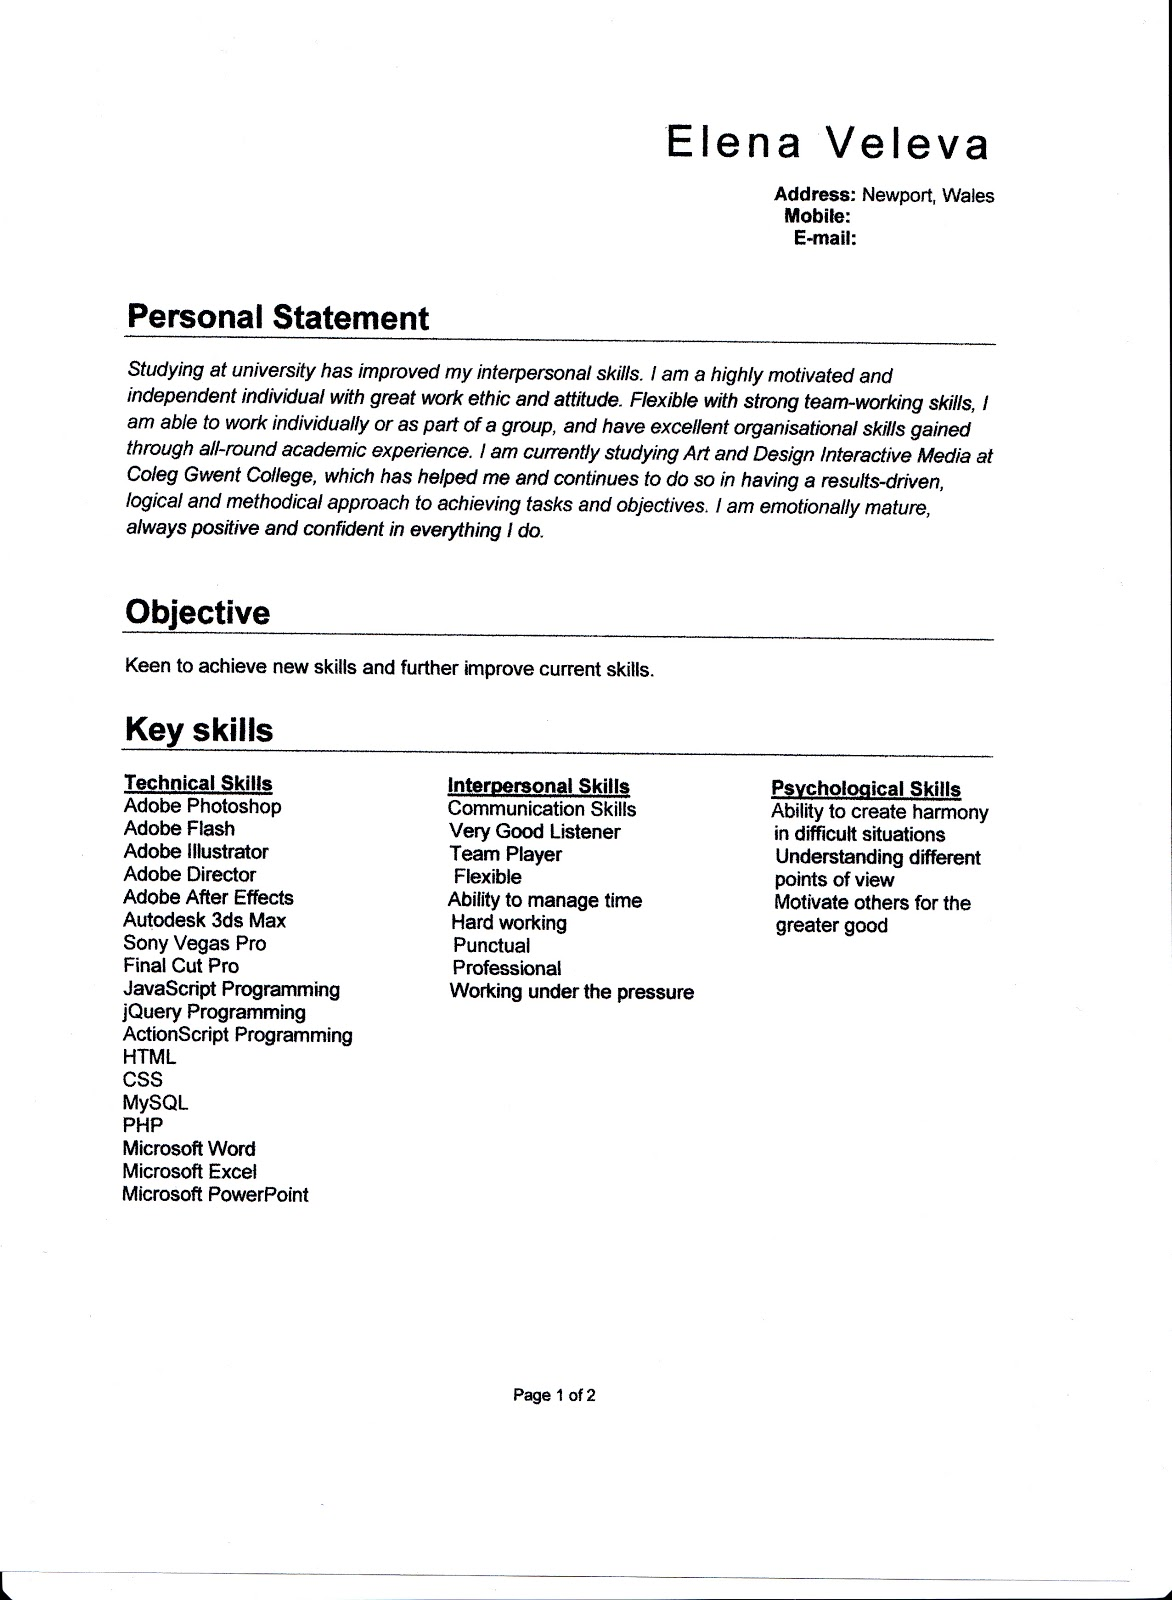 job course application and personal presentation skills page 1